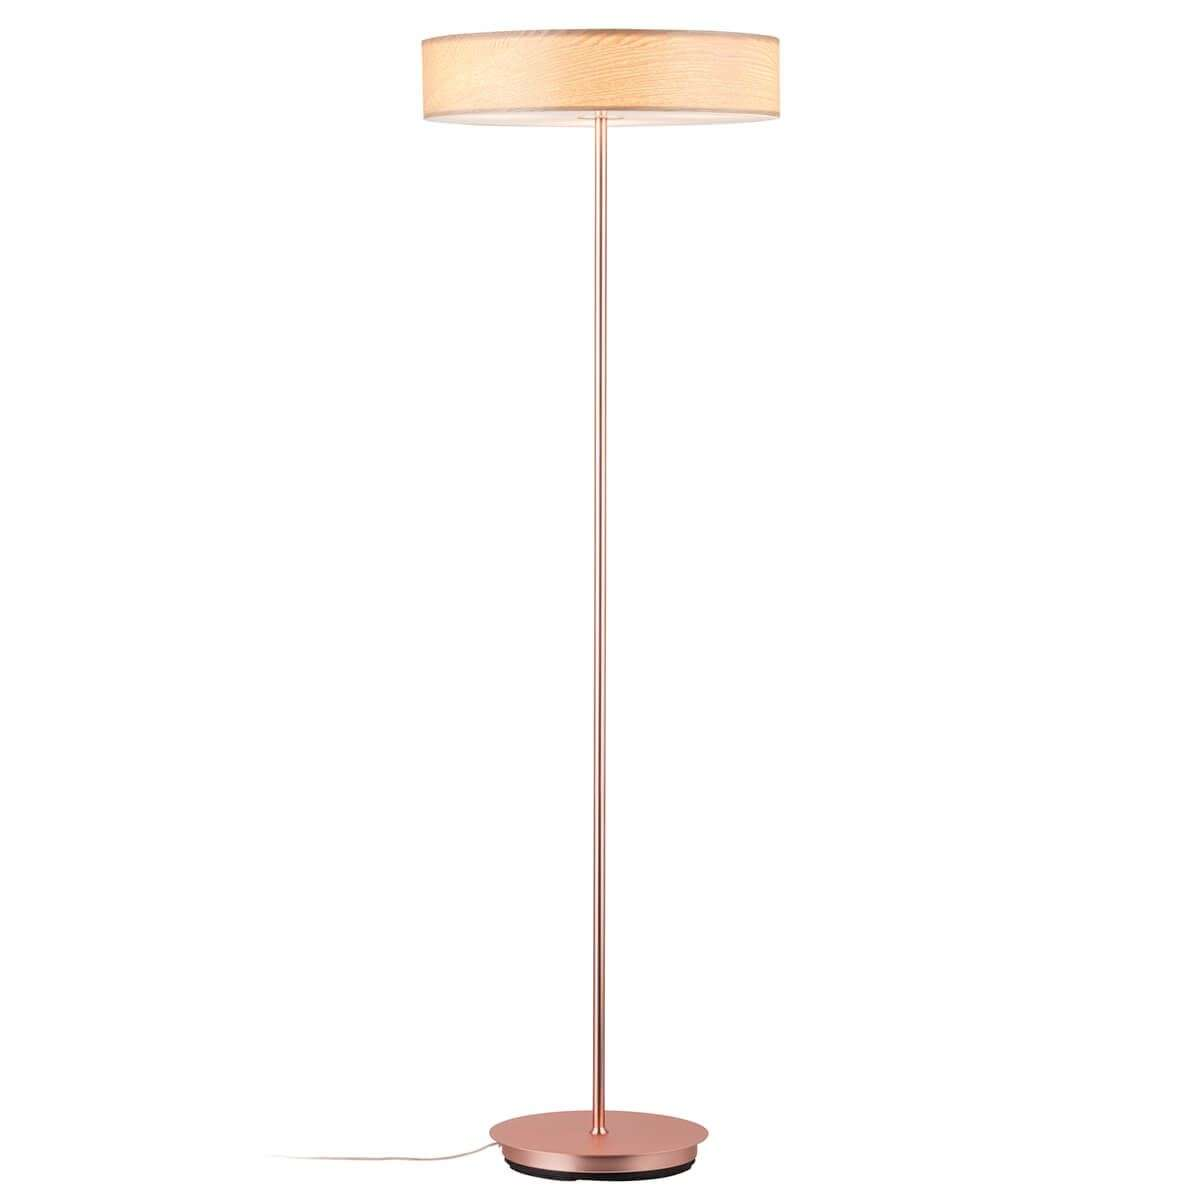 Decorative Floor Lamp Liska With Wooden Lampshade 7601086 32